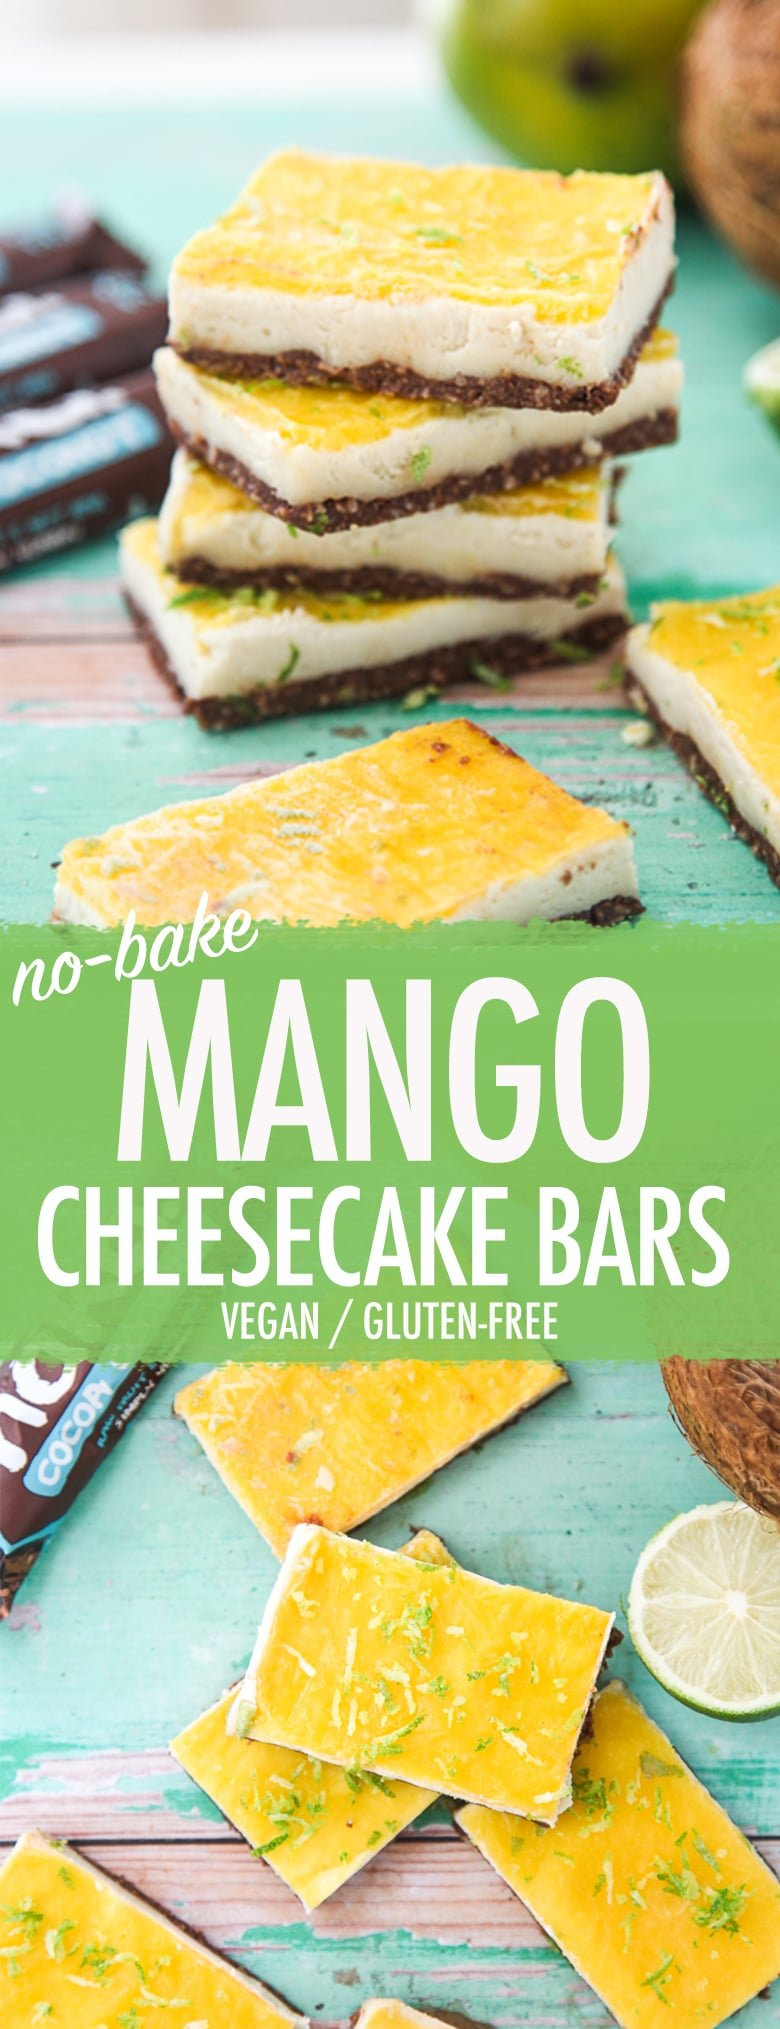 Nakd Mango Cheesecake Bars